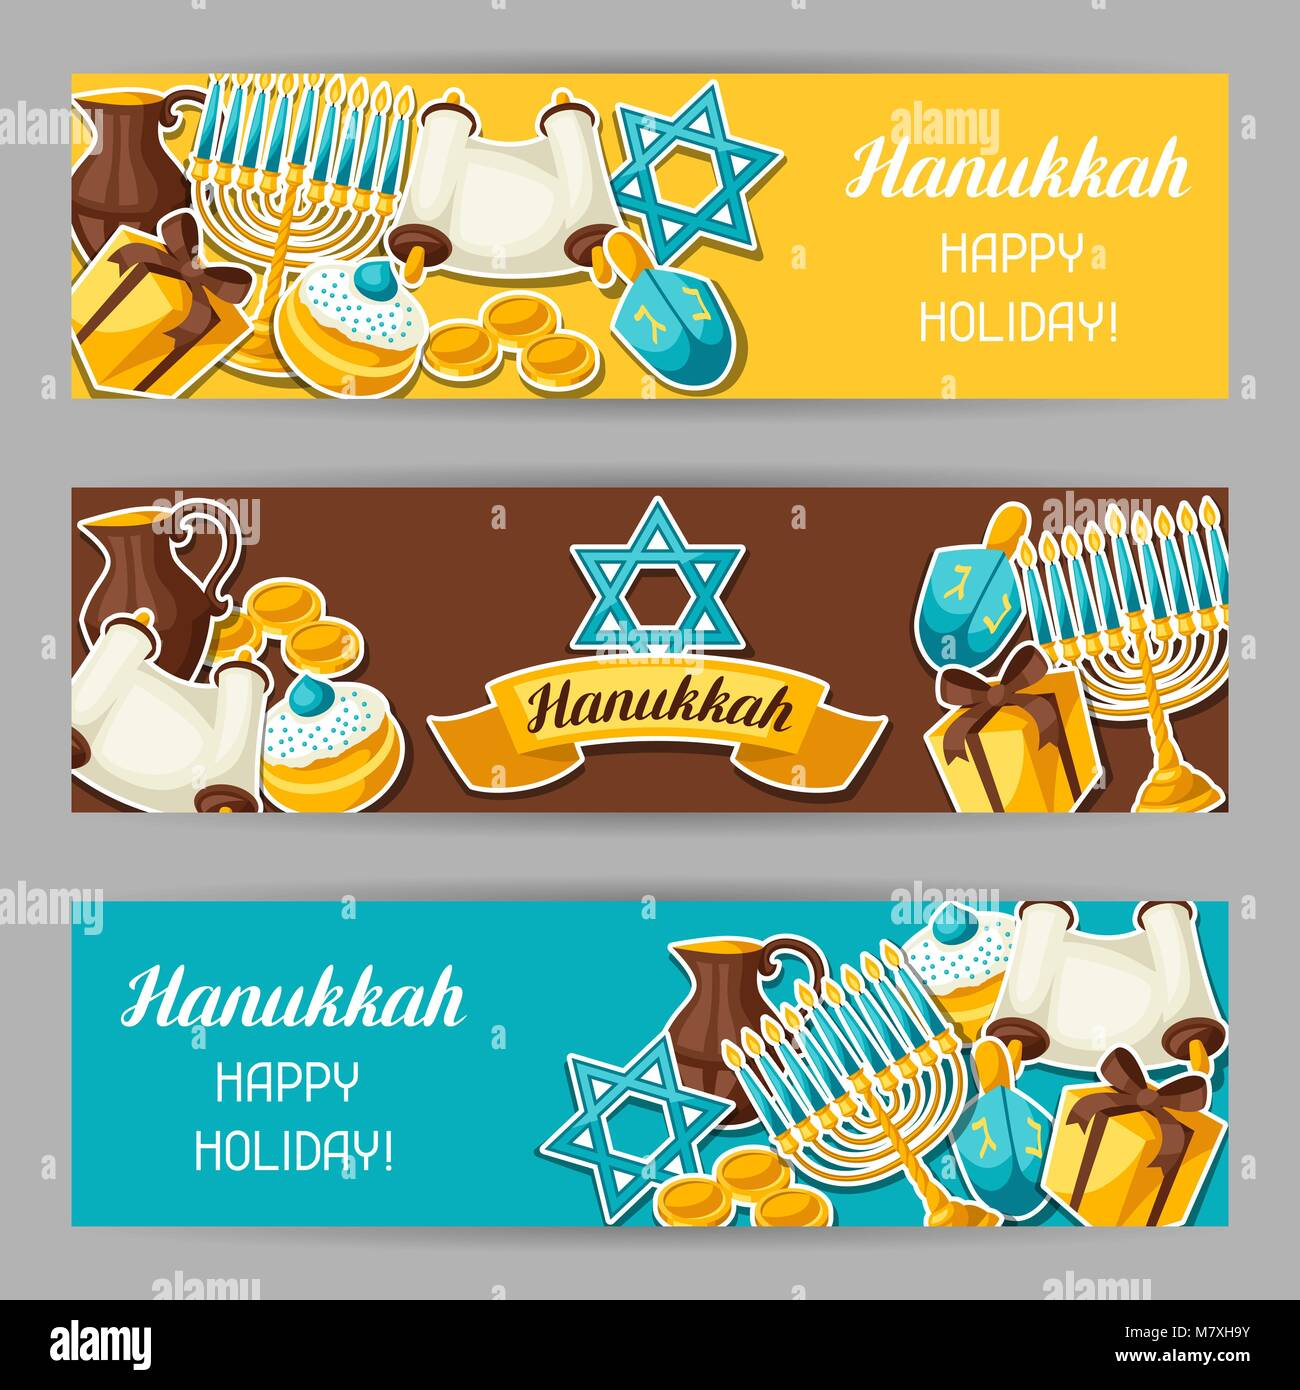 Jewish Hanukkah celebration banners with holiday sticker objects - Stock Vector